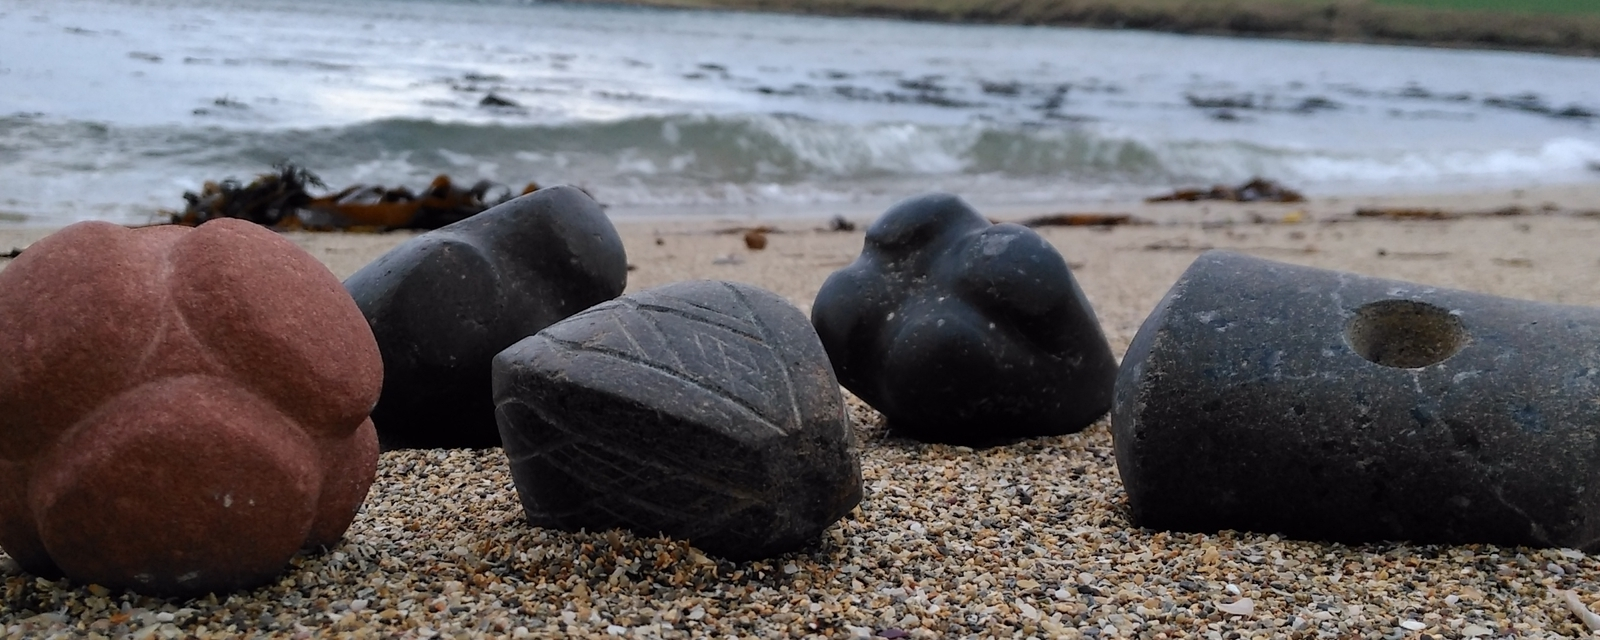 Selection of Neolotic carved stone objects by Chris Gee